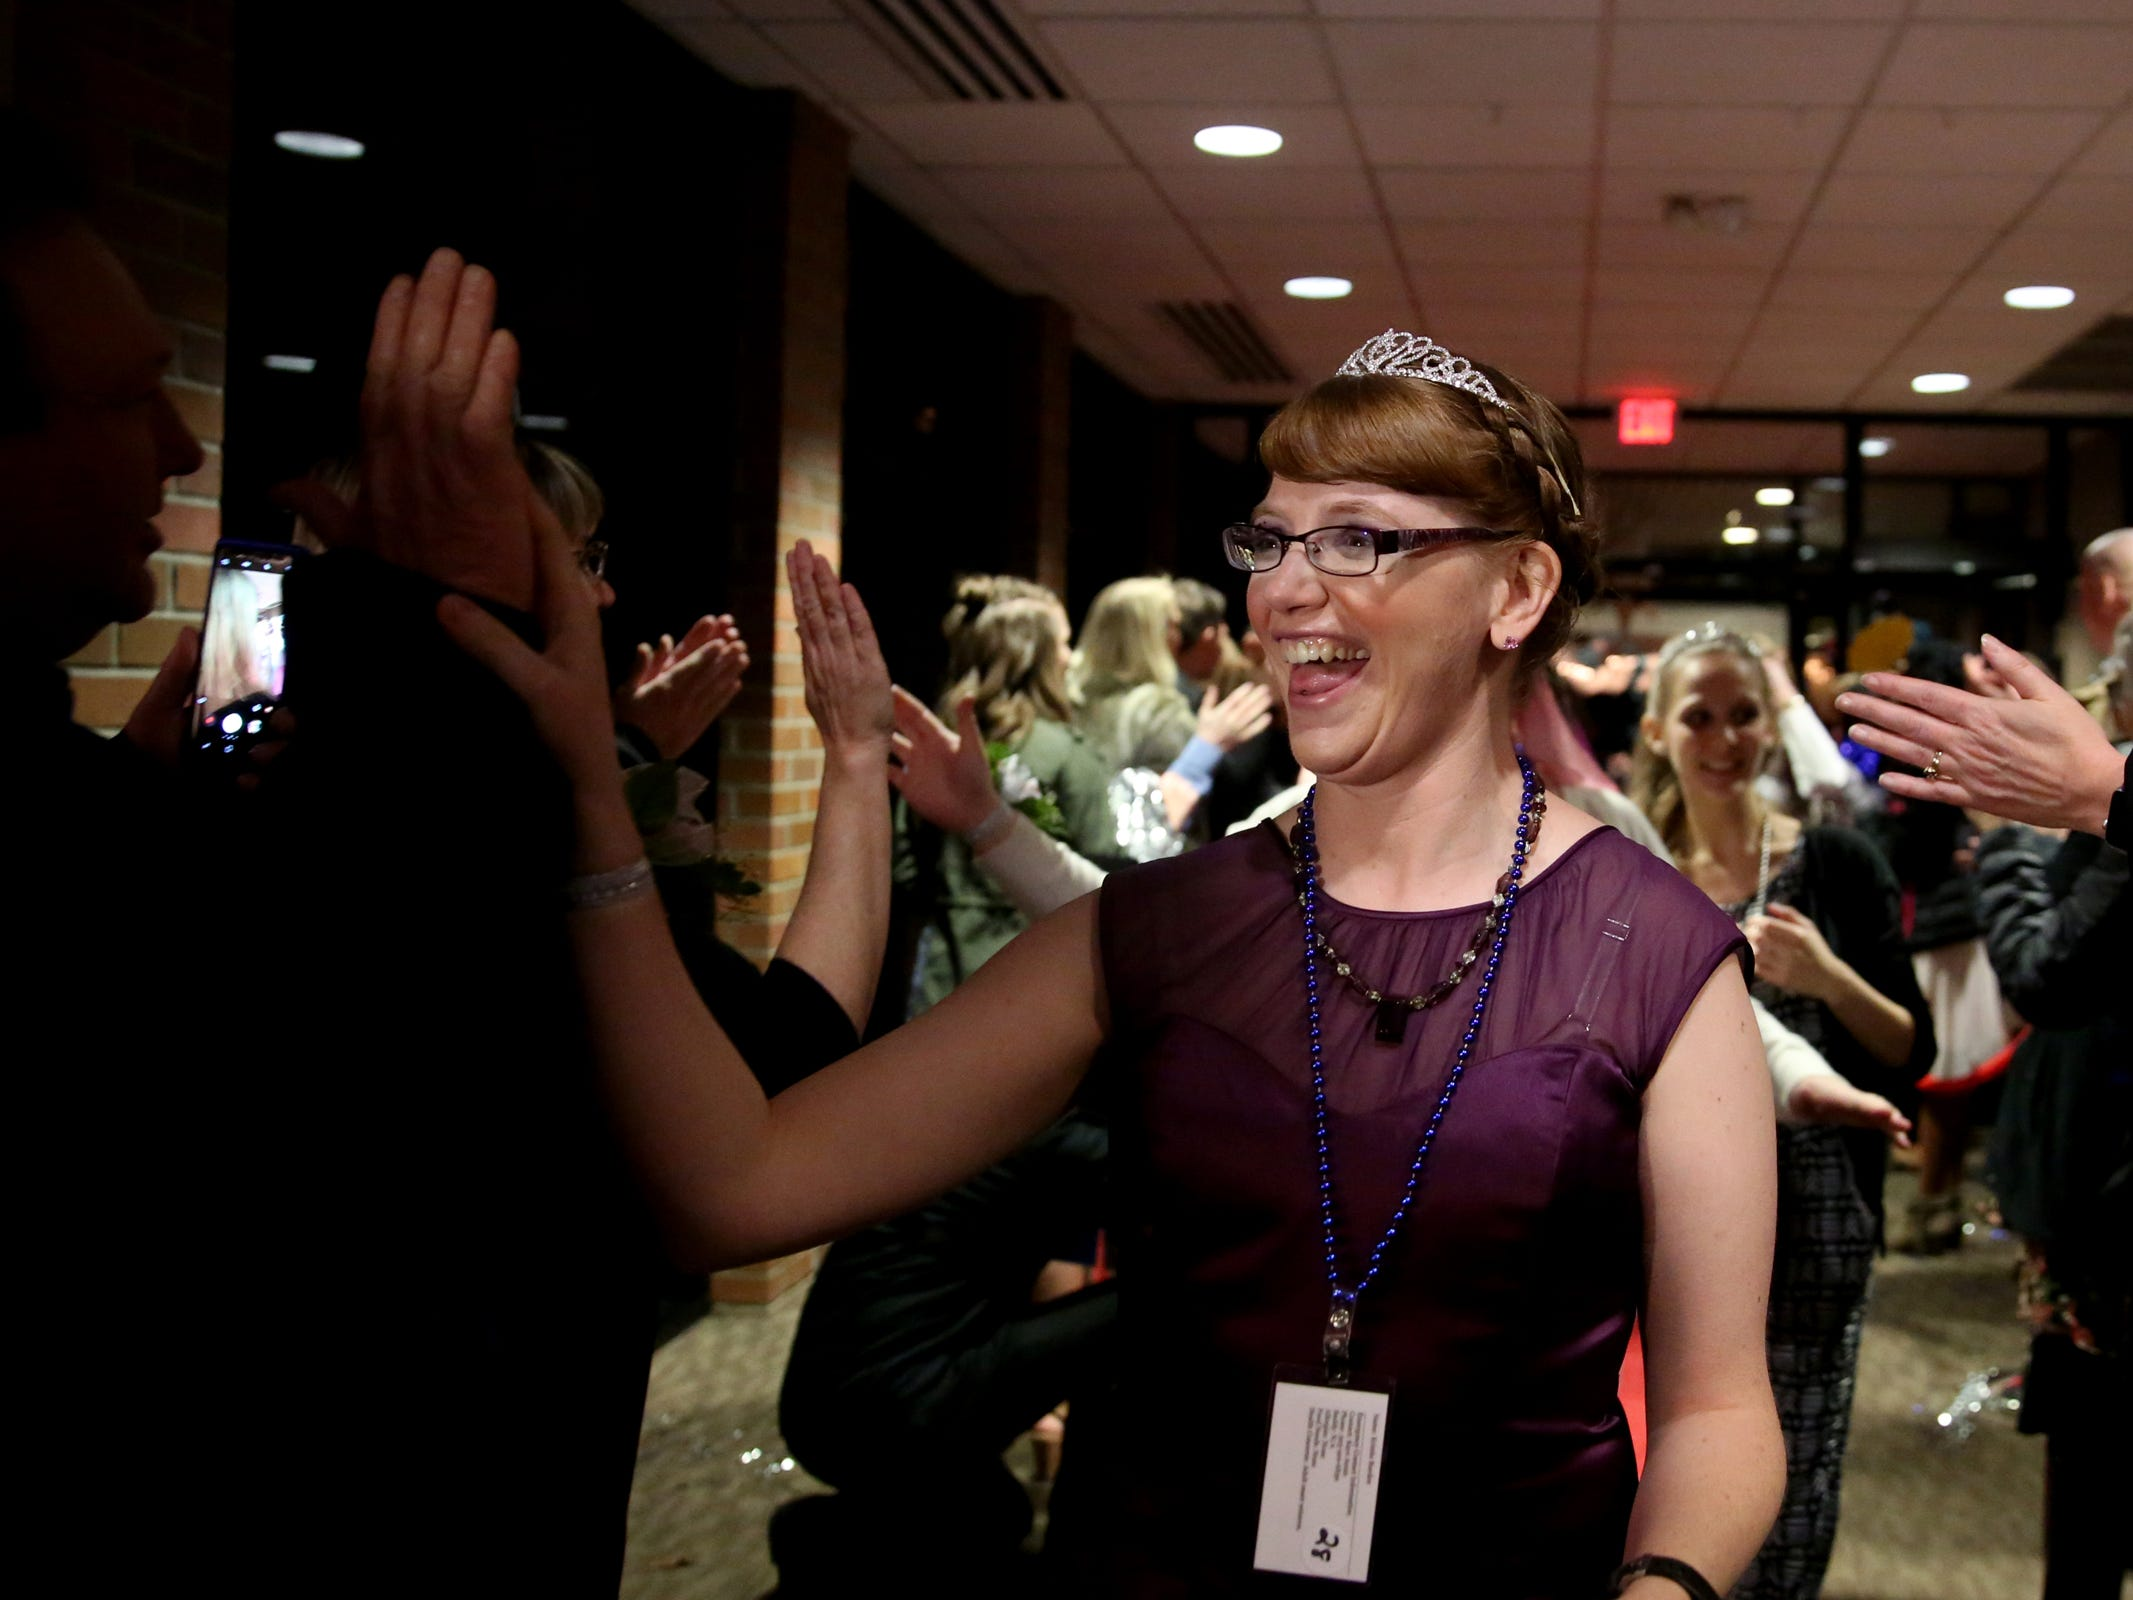 Kris Burden, 36, of Salem, walks the red carpet at Night to Shine, a prom night experience for people with special needs, at Salem Alliance Church on Friday, Feb. 8, 2019.